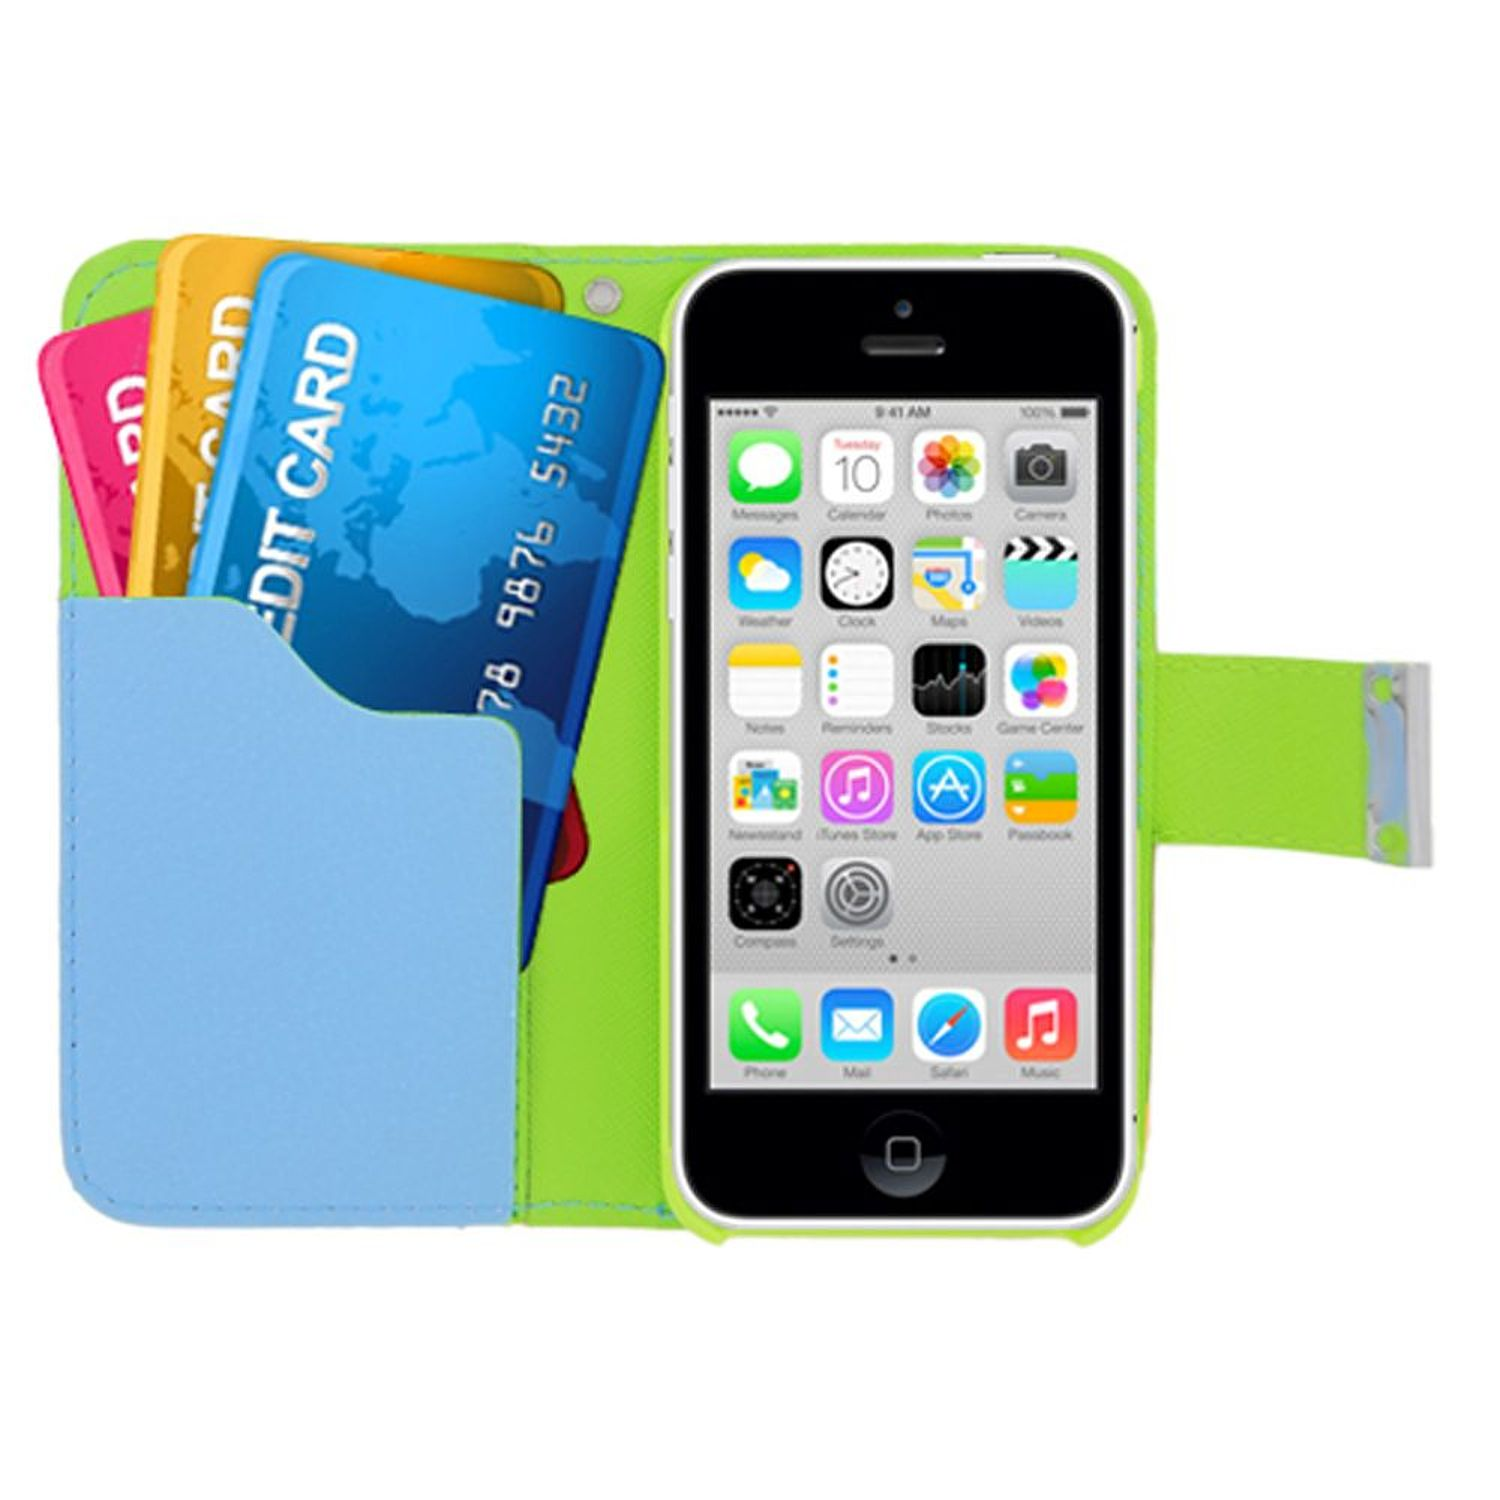 insten Multicolor Book-Style Leather [Card Slot] Wallet Flap Pouch Case Cover For Apple iPhone 5C, Green/Blue